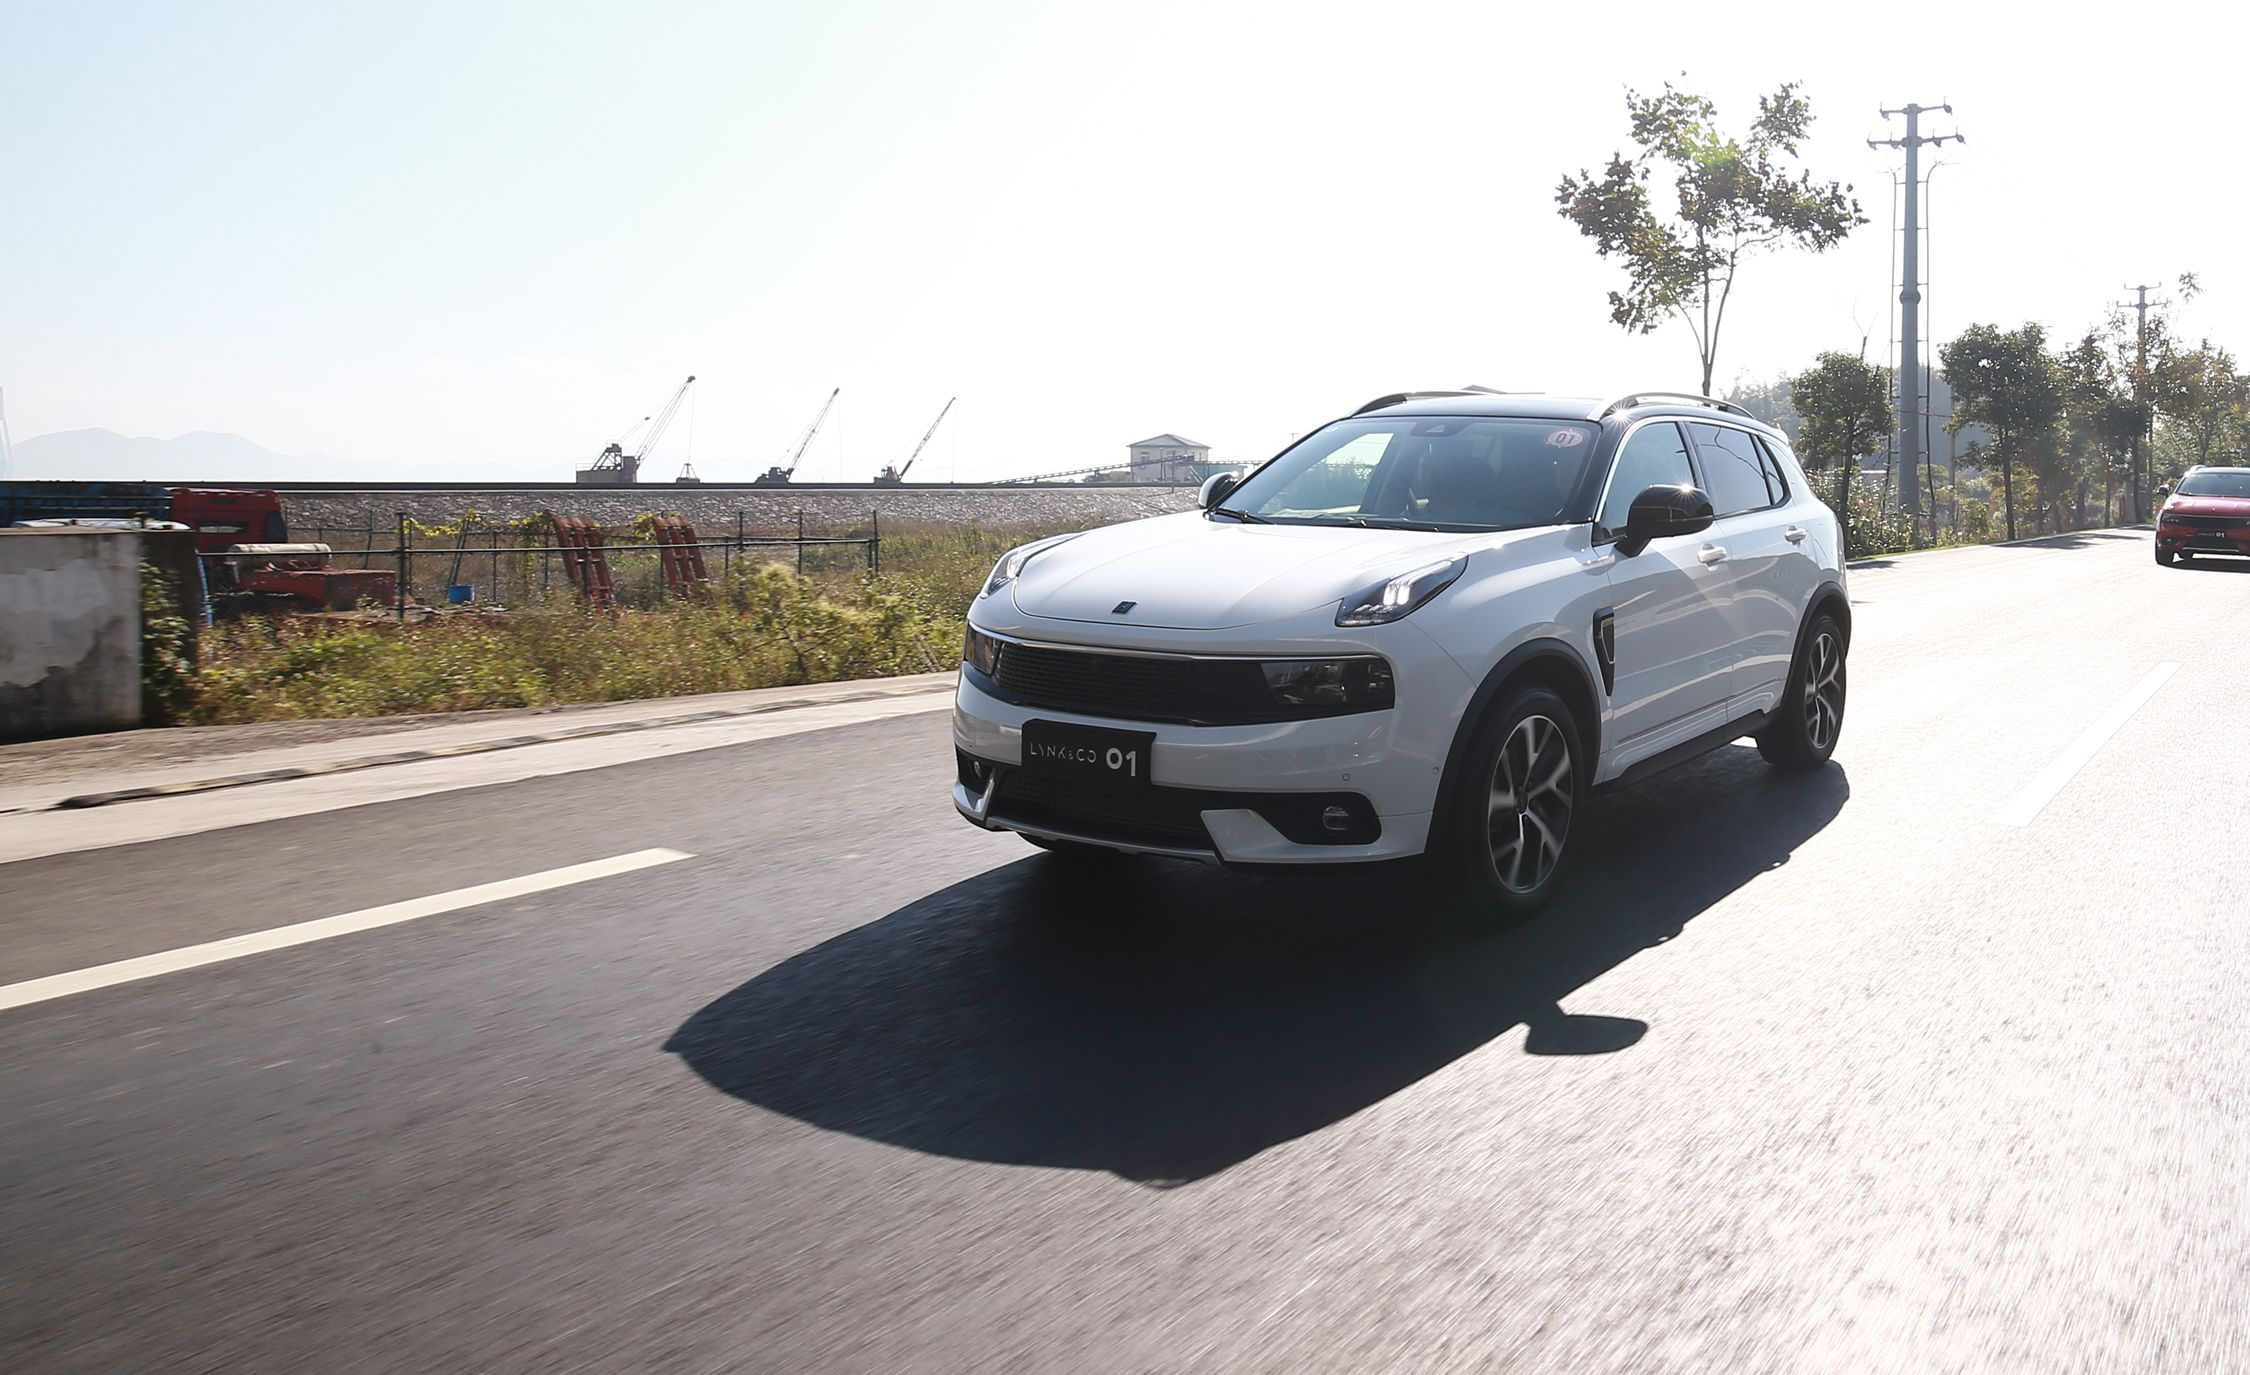 2020 Lynk Co 01 Driven It S A Volvo Based Chinese Cuv Review